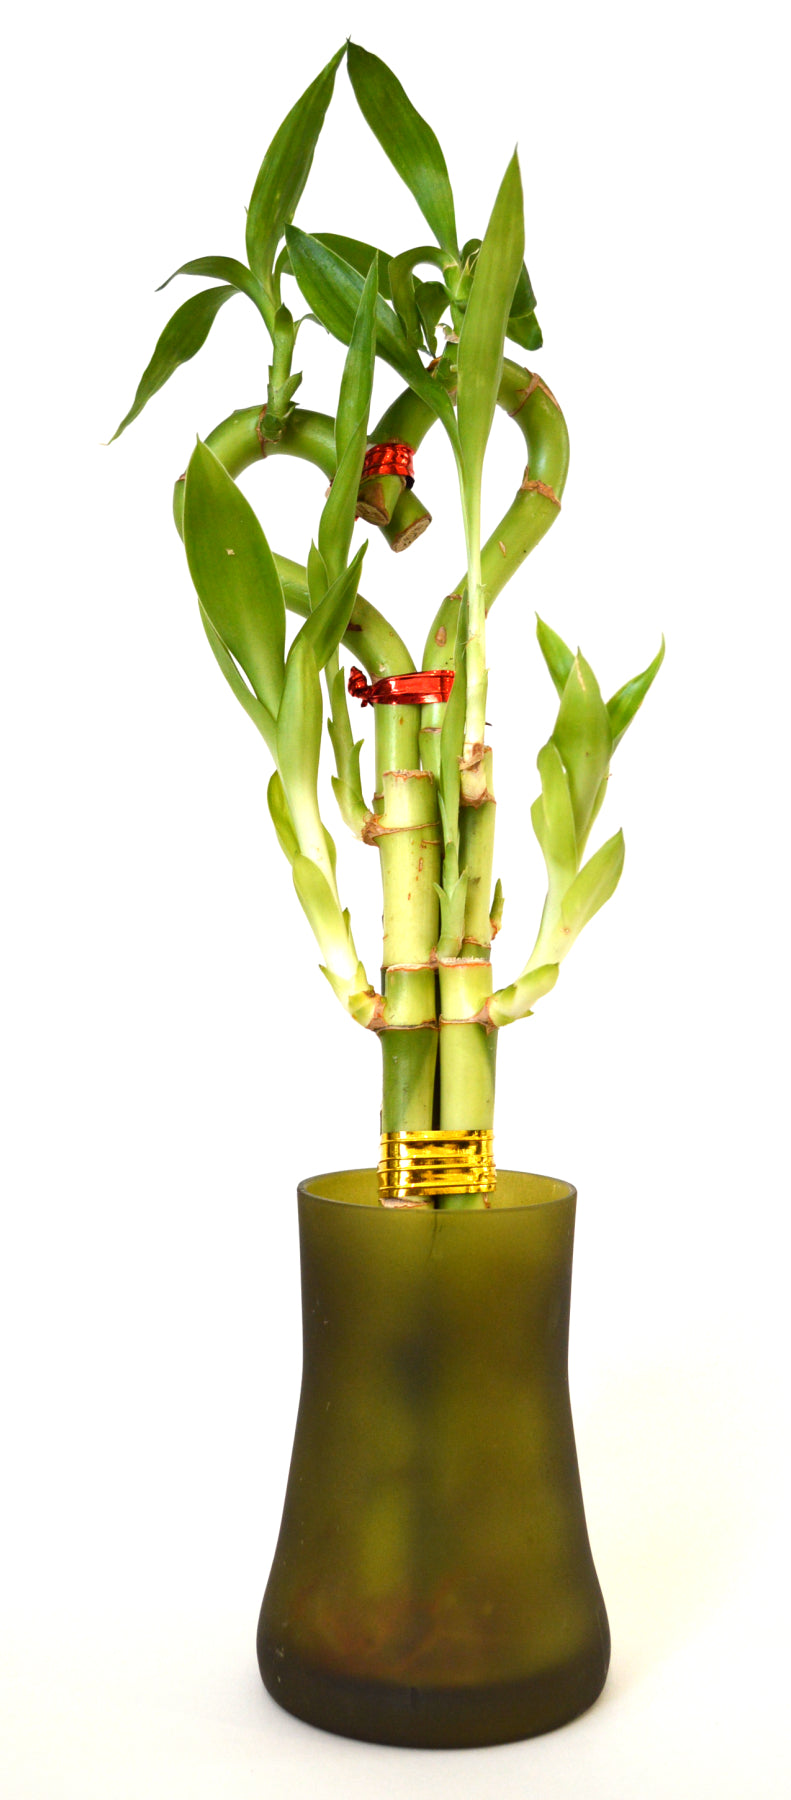 9GreenBox - Lucky Bamboo Heart Style with Tall Glass Vase - 9GreenBox